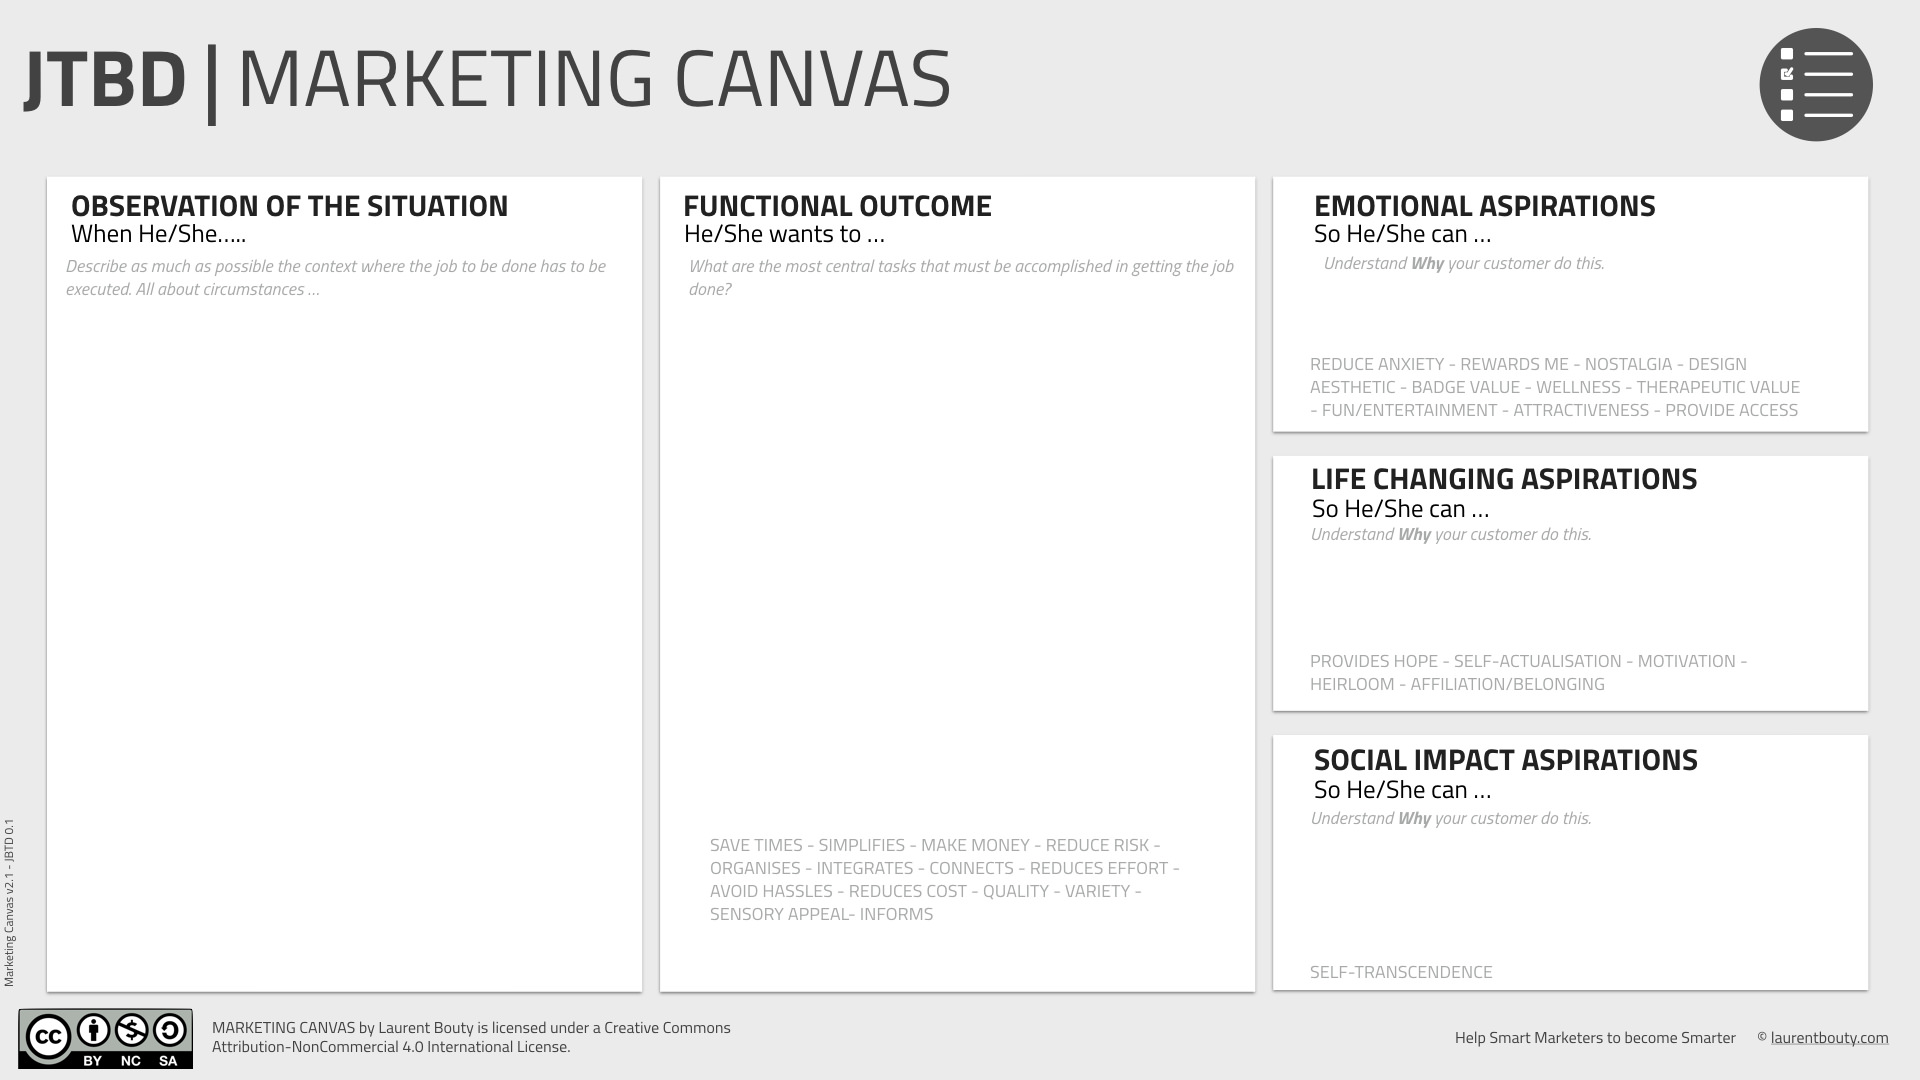 Marketing Canvas - Job To Be Done